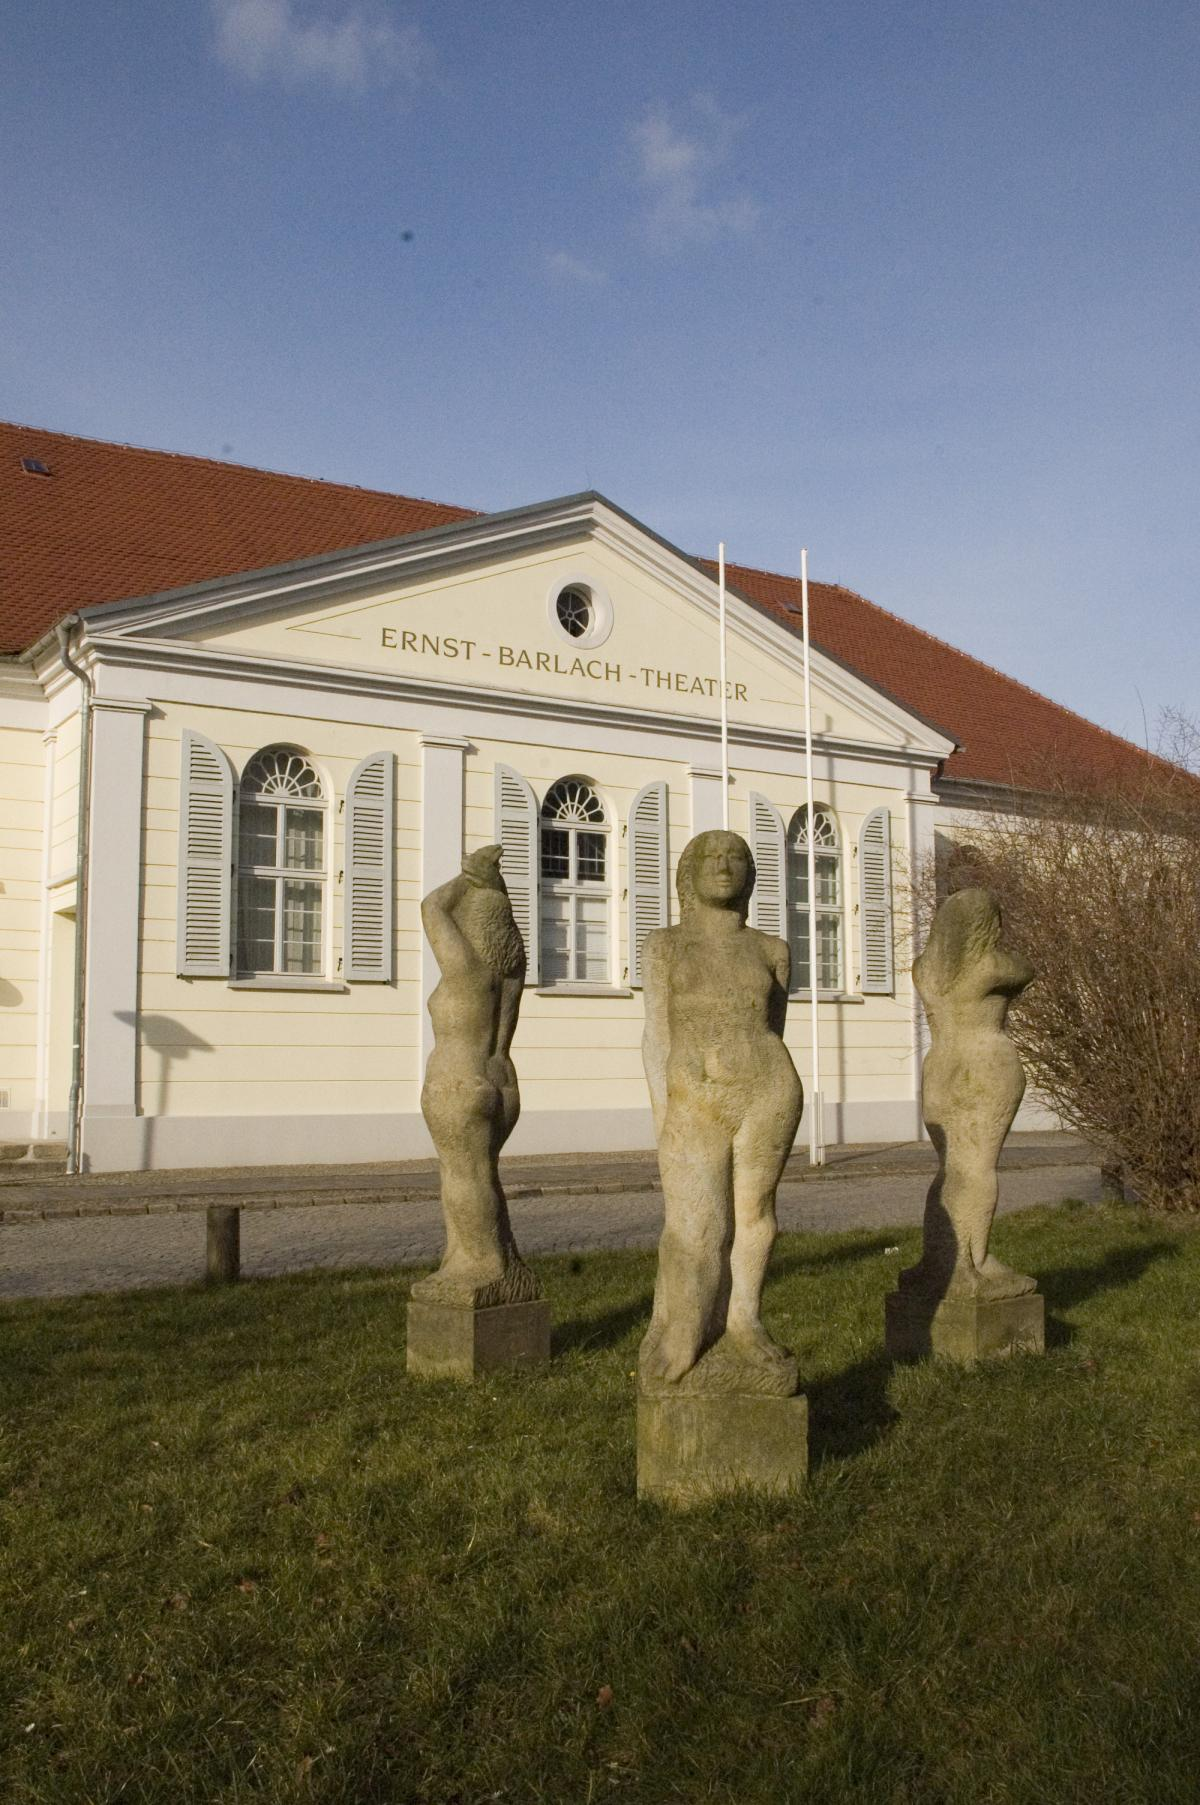 Ernst-Barlach-Theater